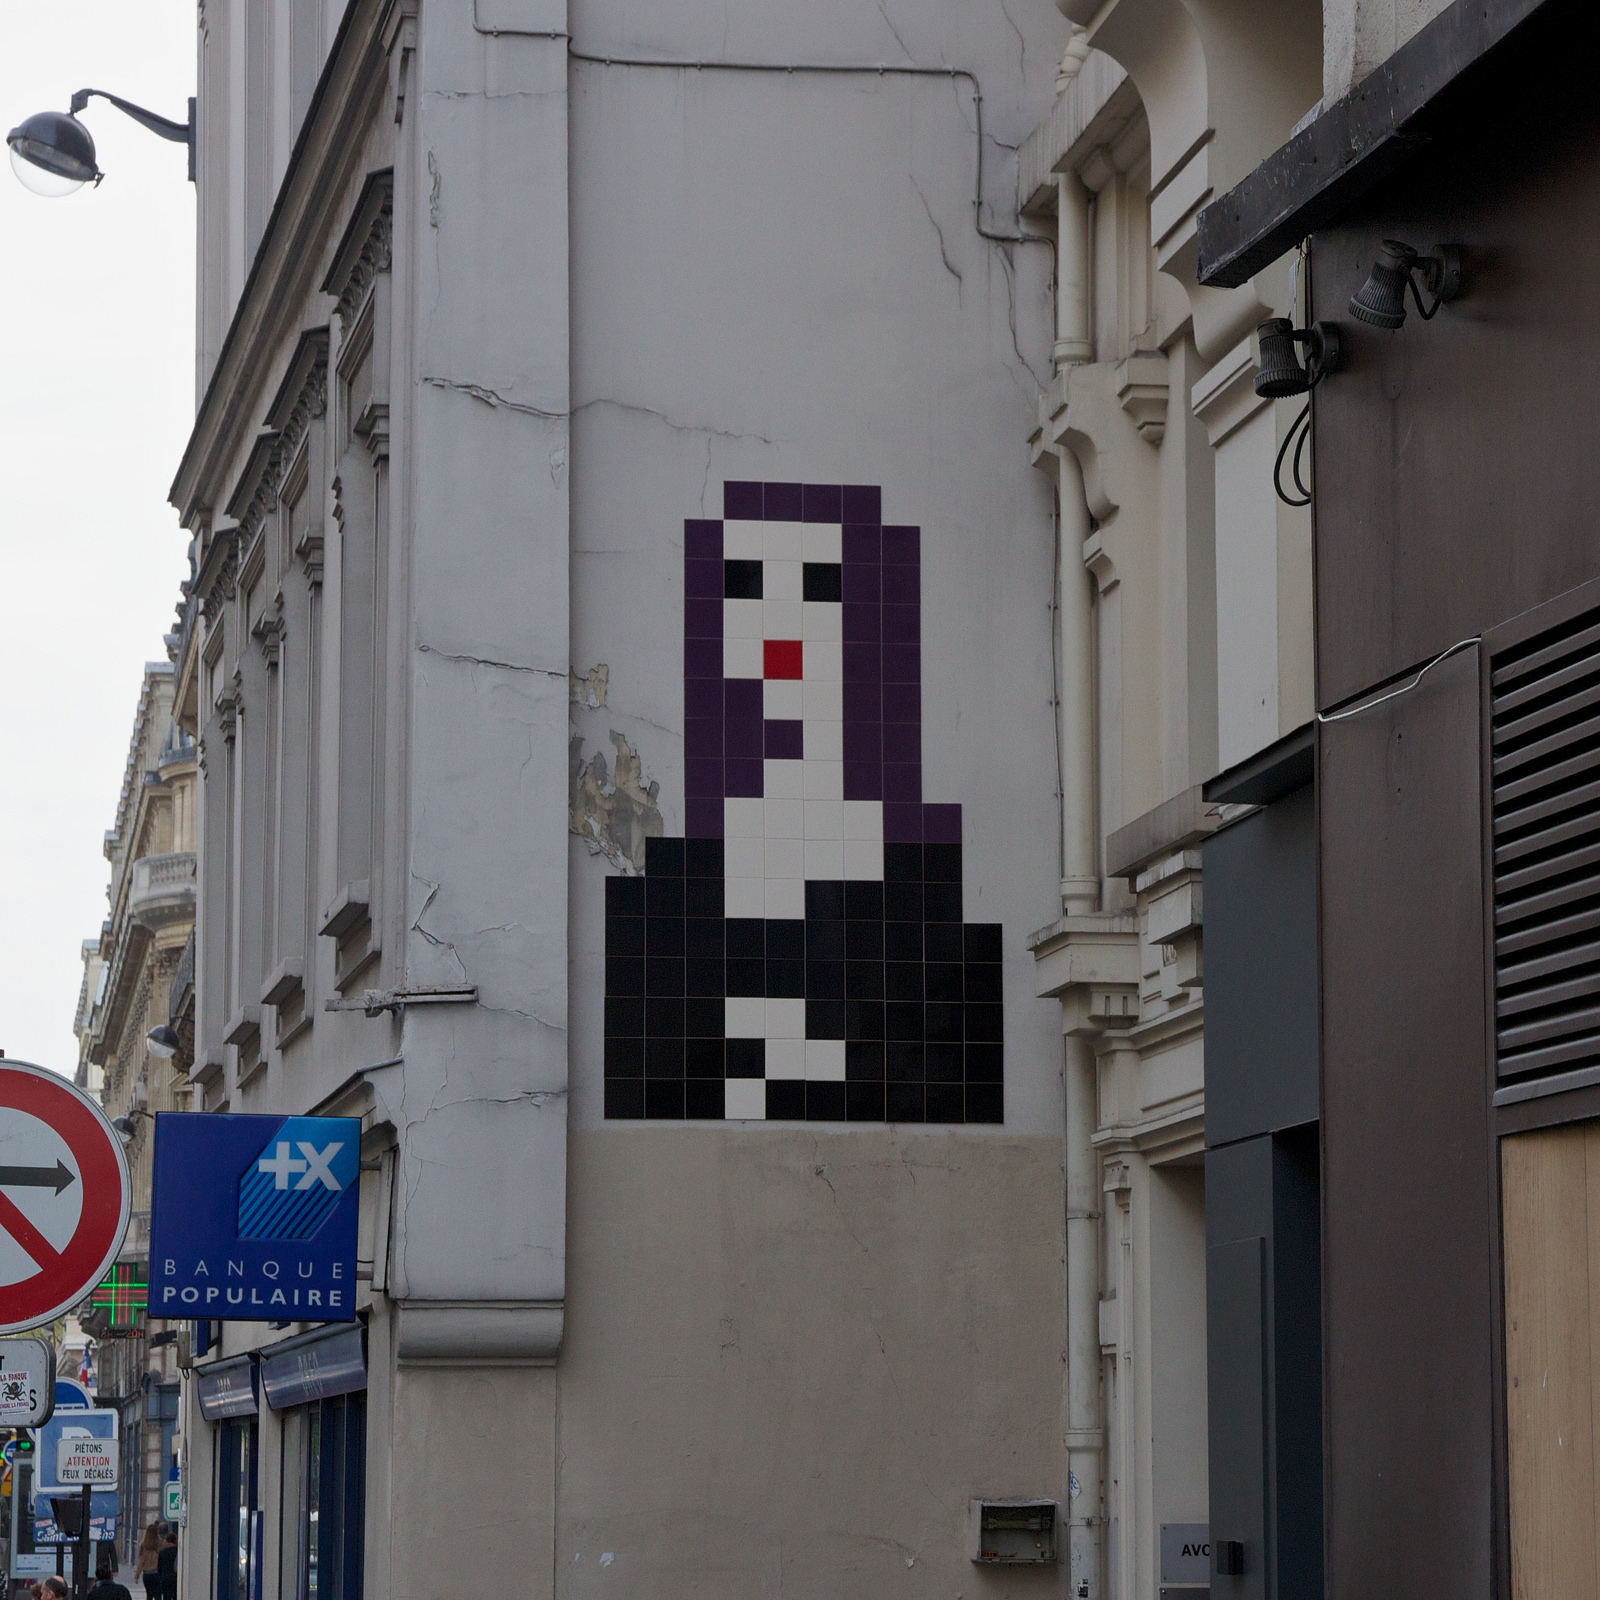 invader-monna-lisa-new-piece-in-paris-france-03